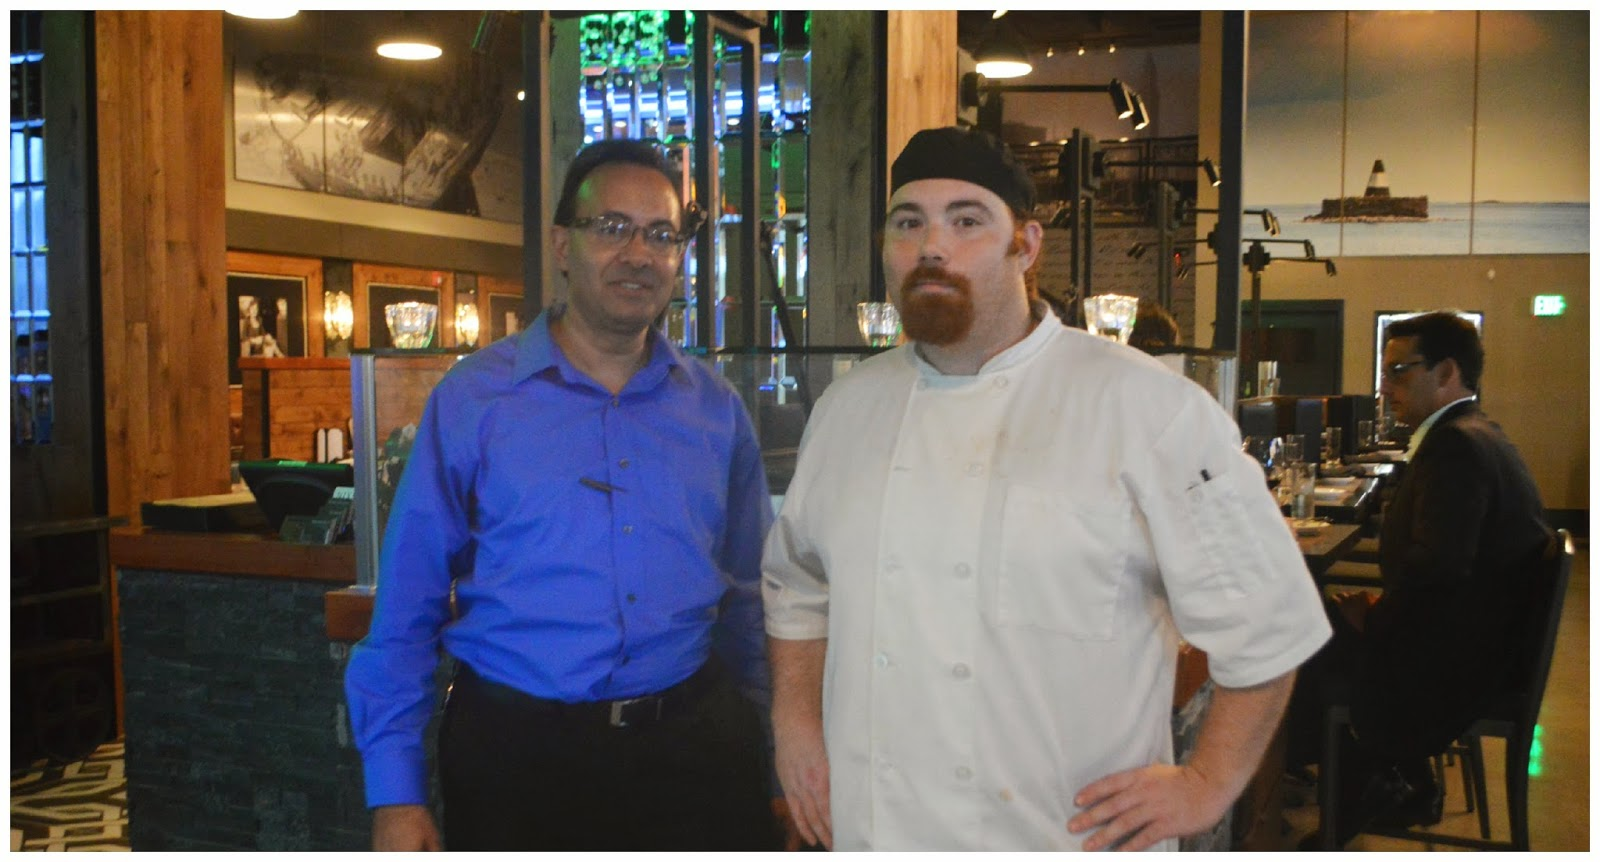 NIXS Hartford Executive Staff, GM Yaz, Chef John